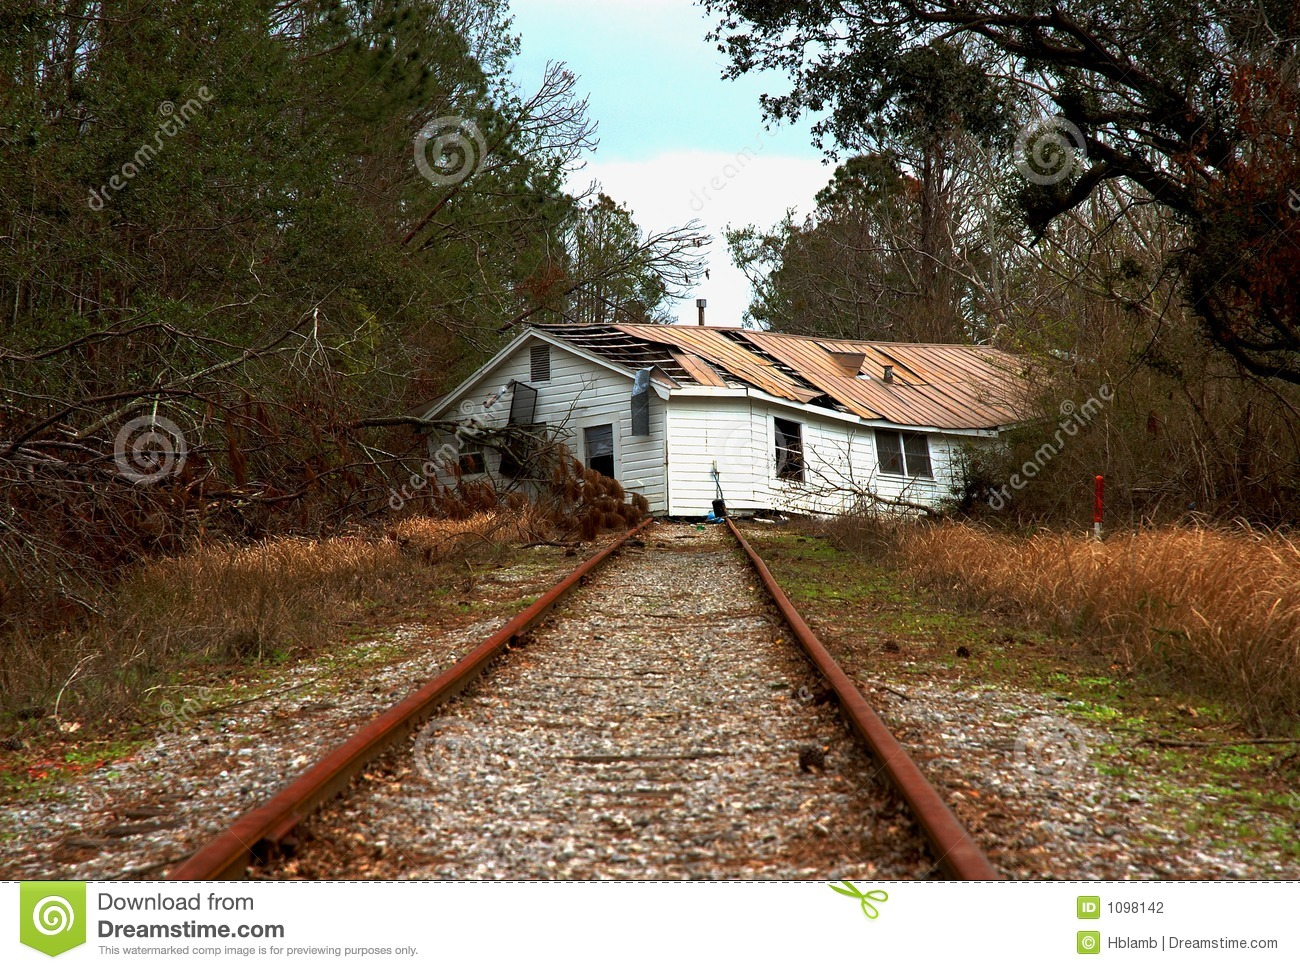 House On Railroad Tracks Stock Photography Image 1098142